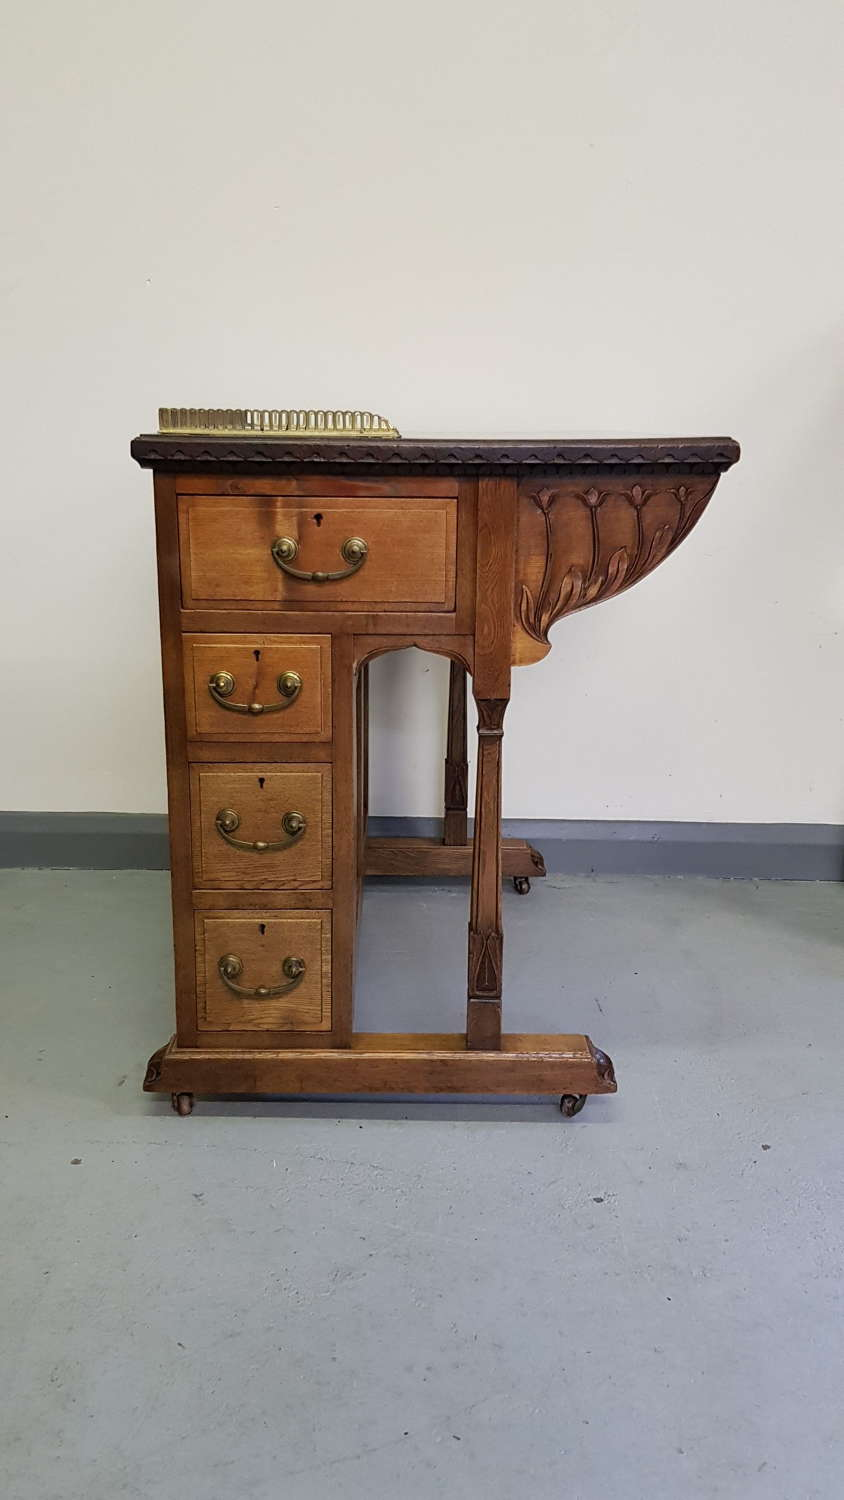 Rare WAS Benson Arts & Crafts Nouveau davenport style desk